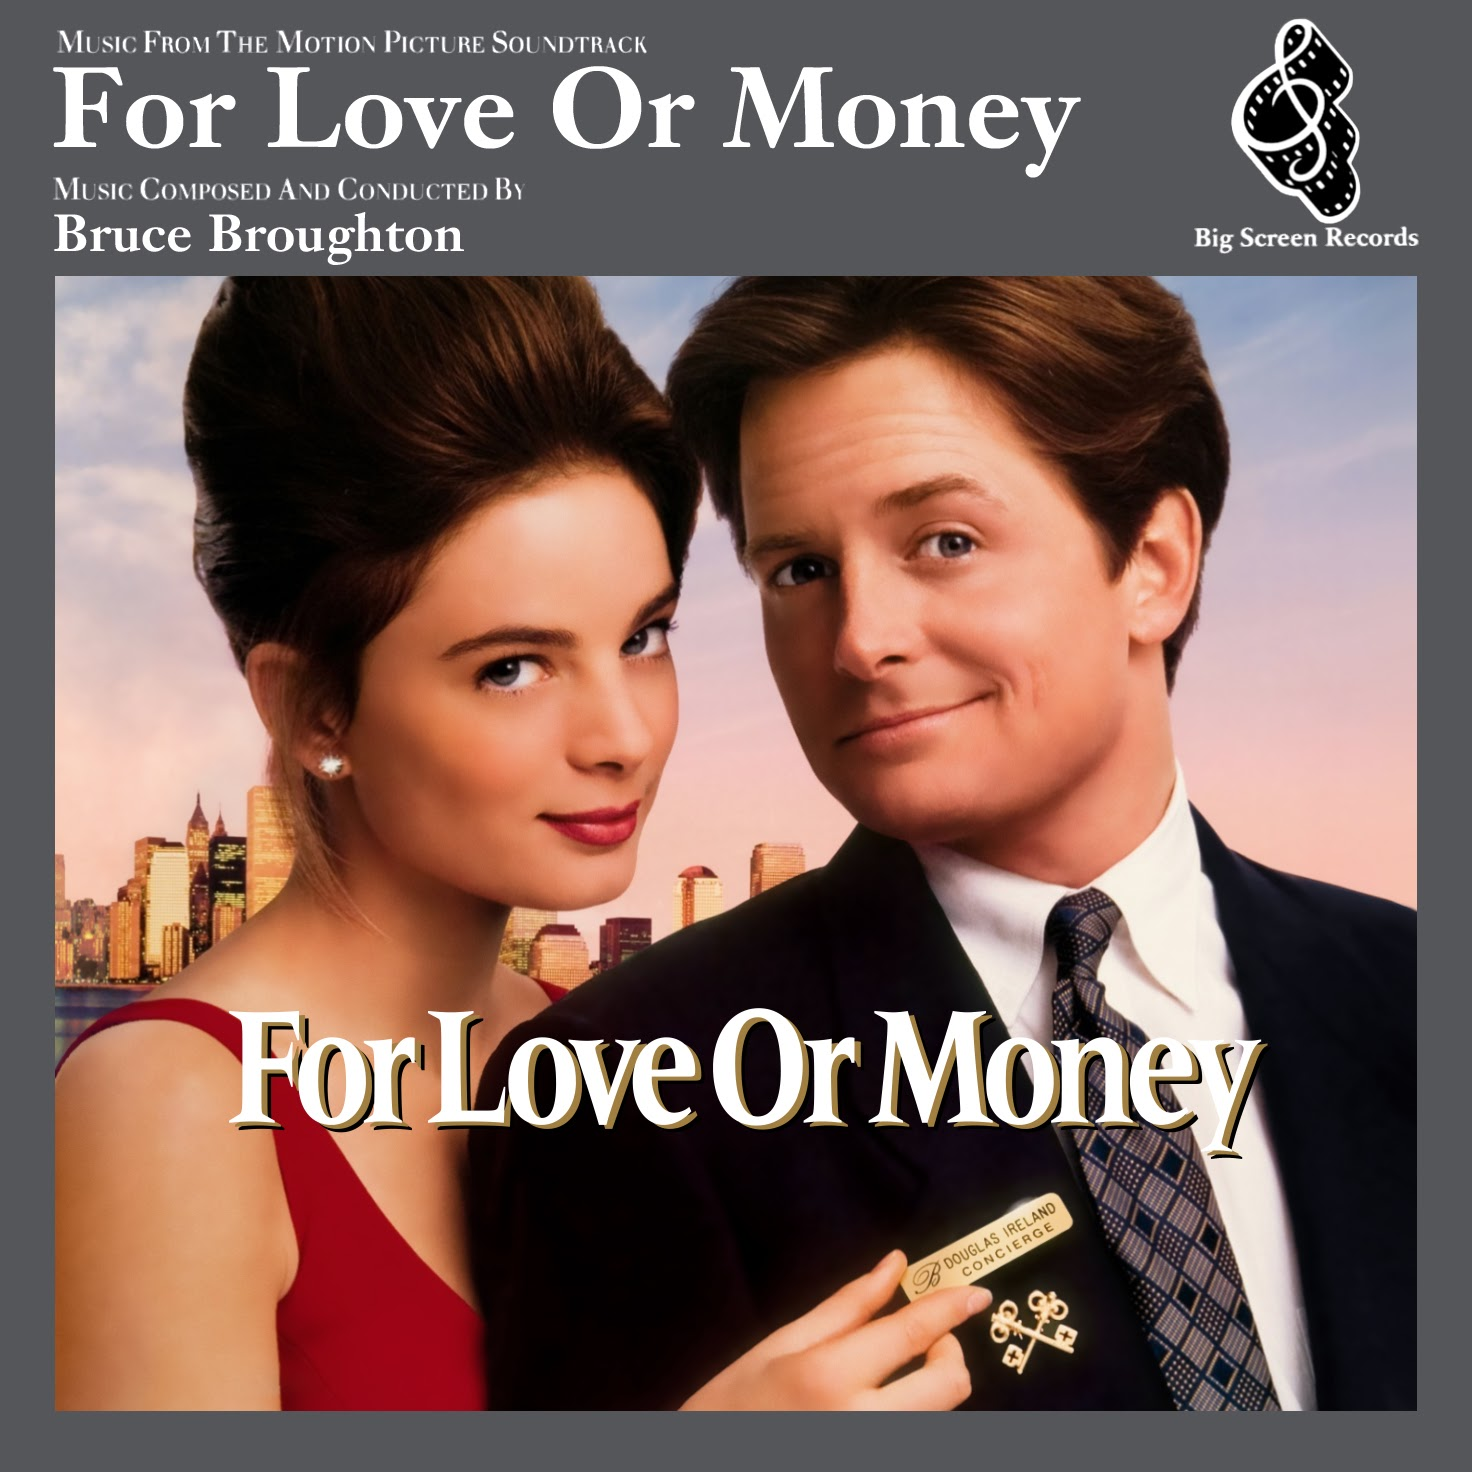 Album Artist: Bruce Broughton / Album Title: For Love or Money (Music from the Motion Picture Soundtrack)